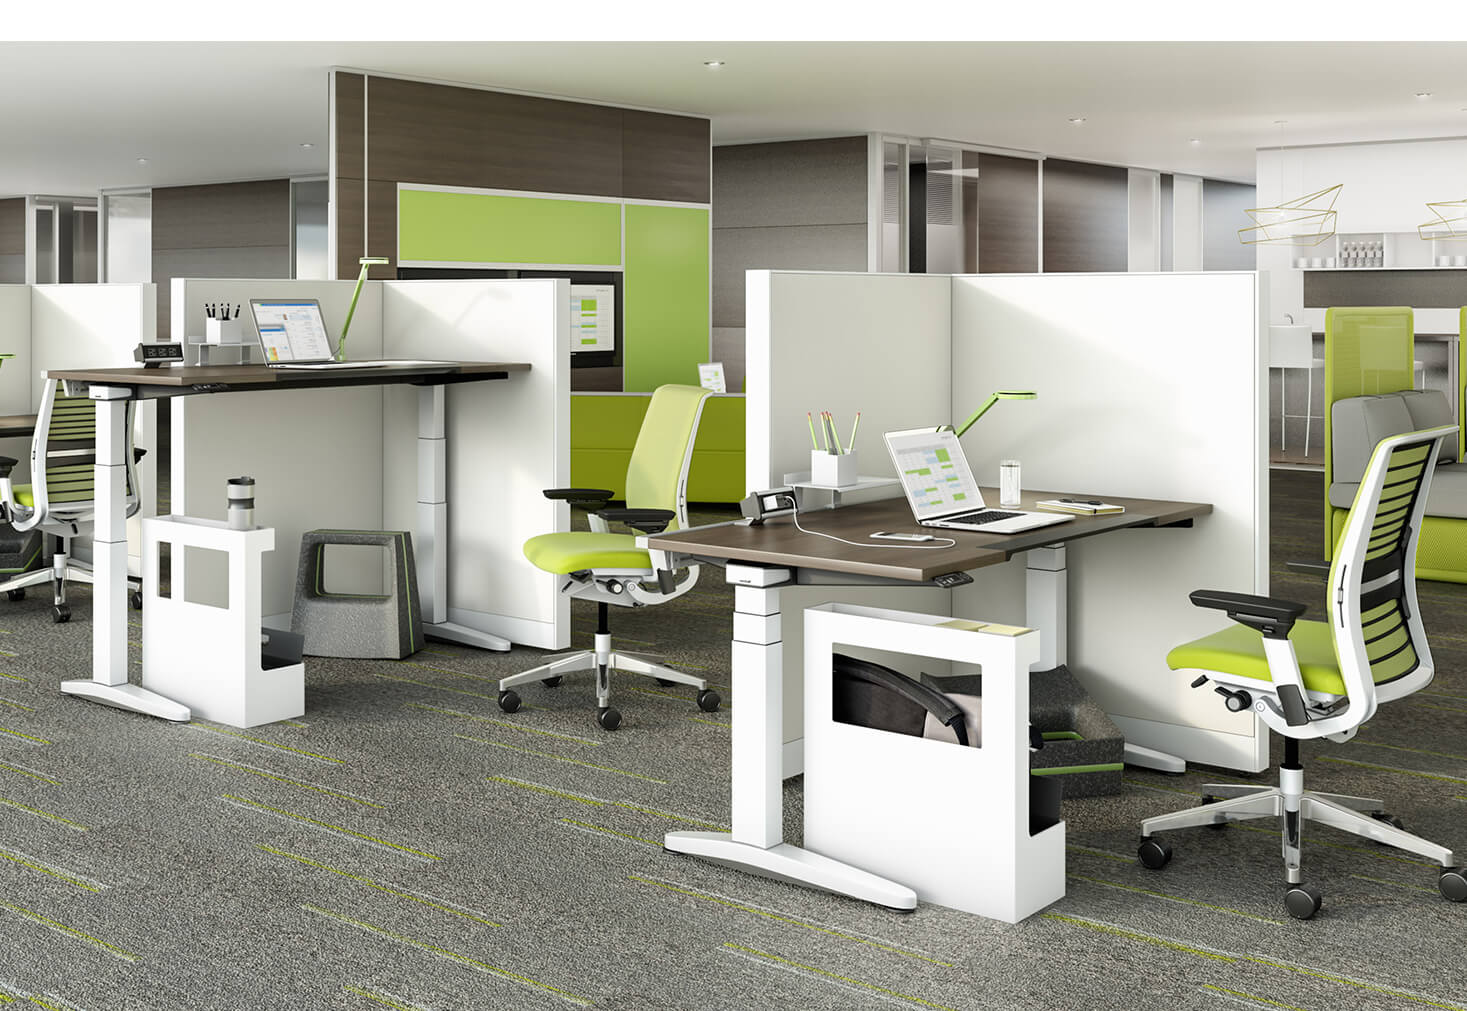 Office with multiple desks and green rolling chairs by OFDC Commercial Interiors